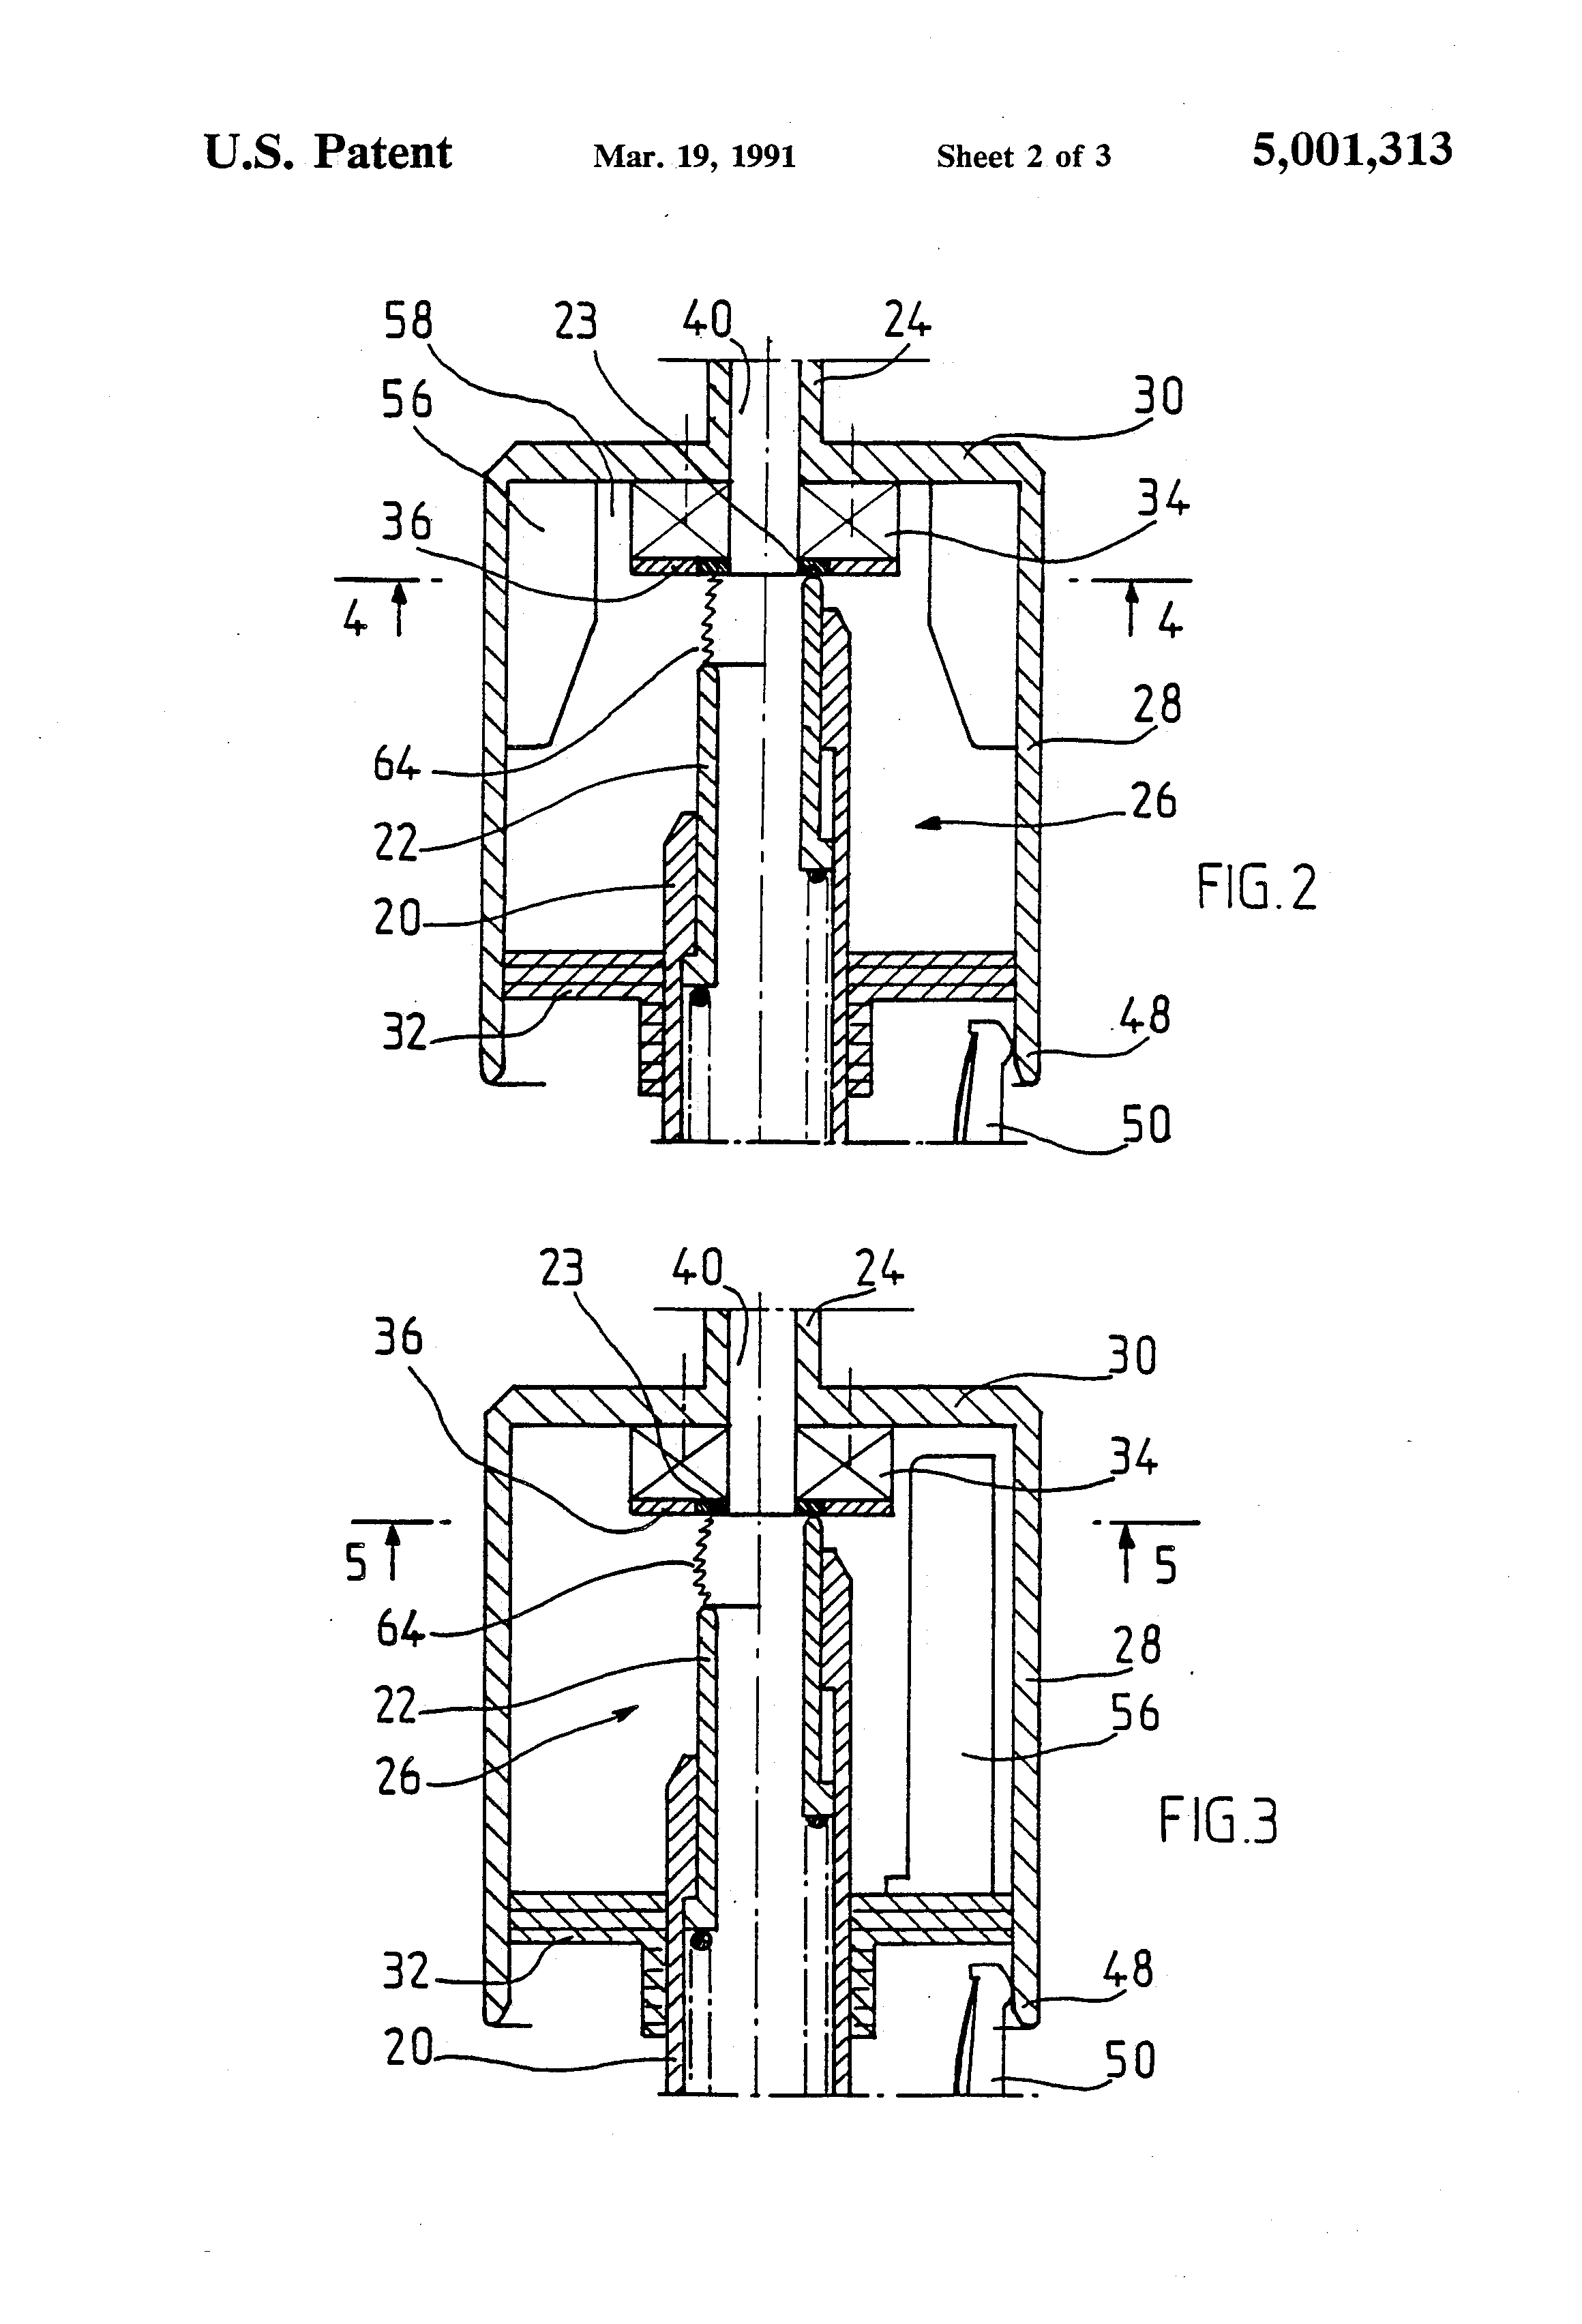 Arc Circuit Breaker Siemens Fumtc Square Homeline 20 Amp Breakers Single Pole Patent Drawing Us5001313 Rotating With Centrifugal